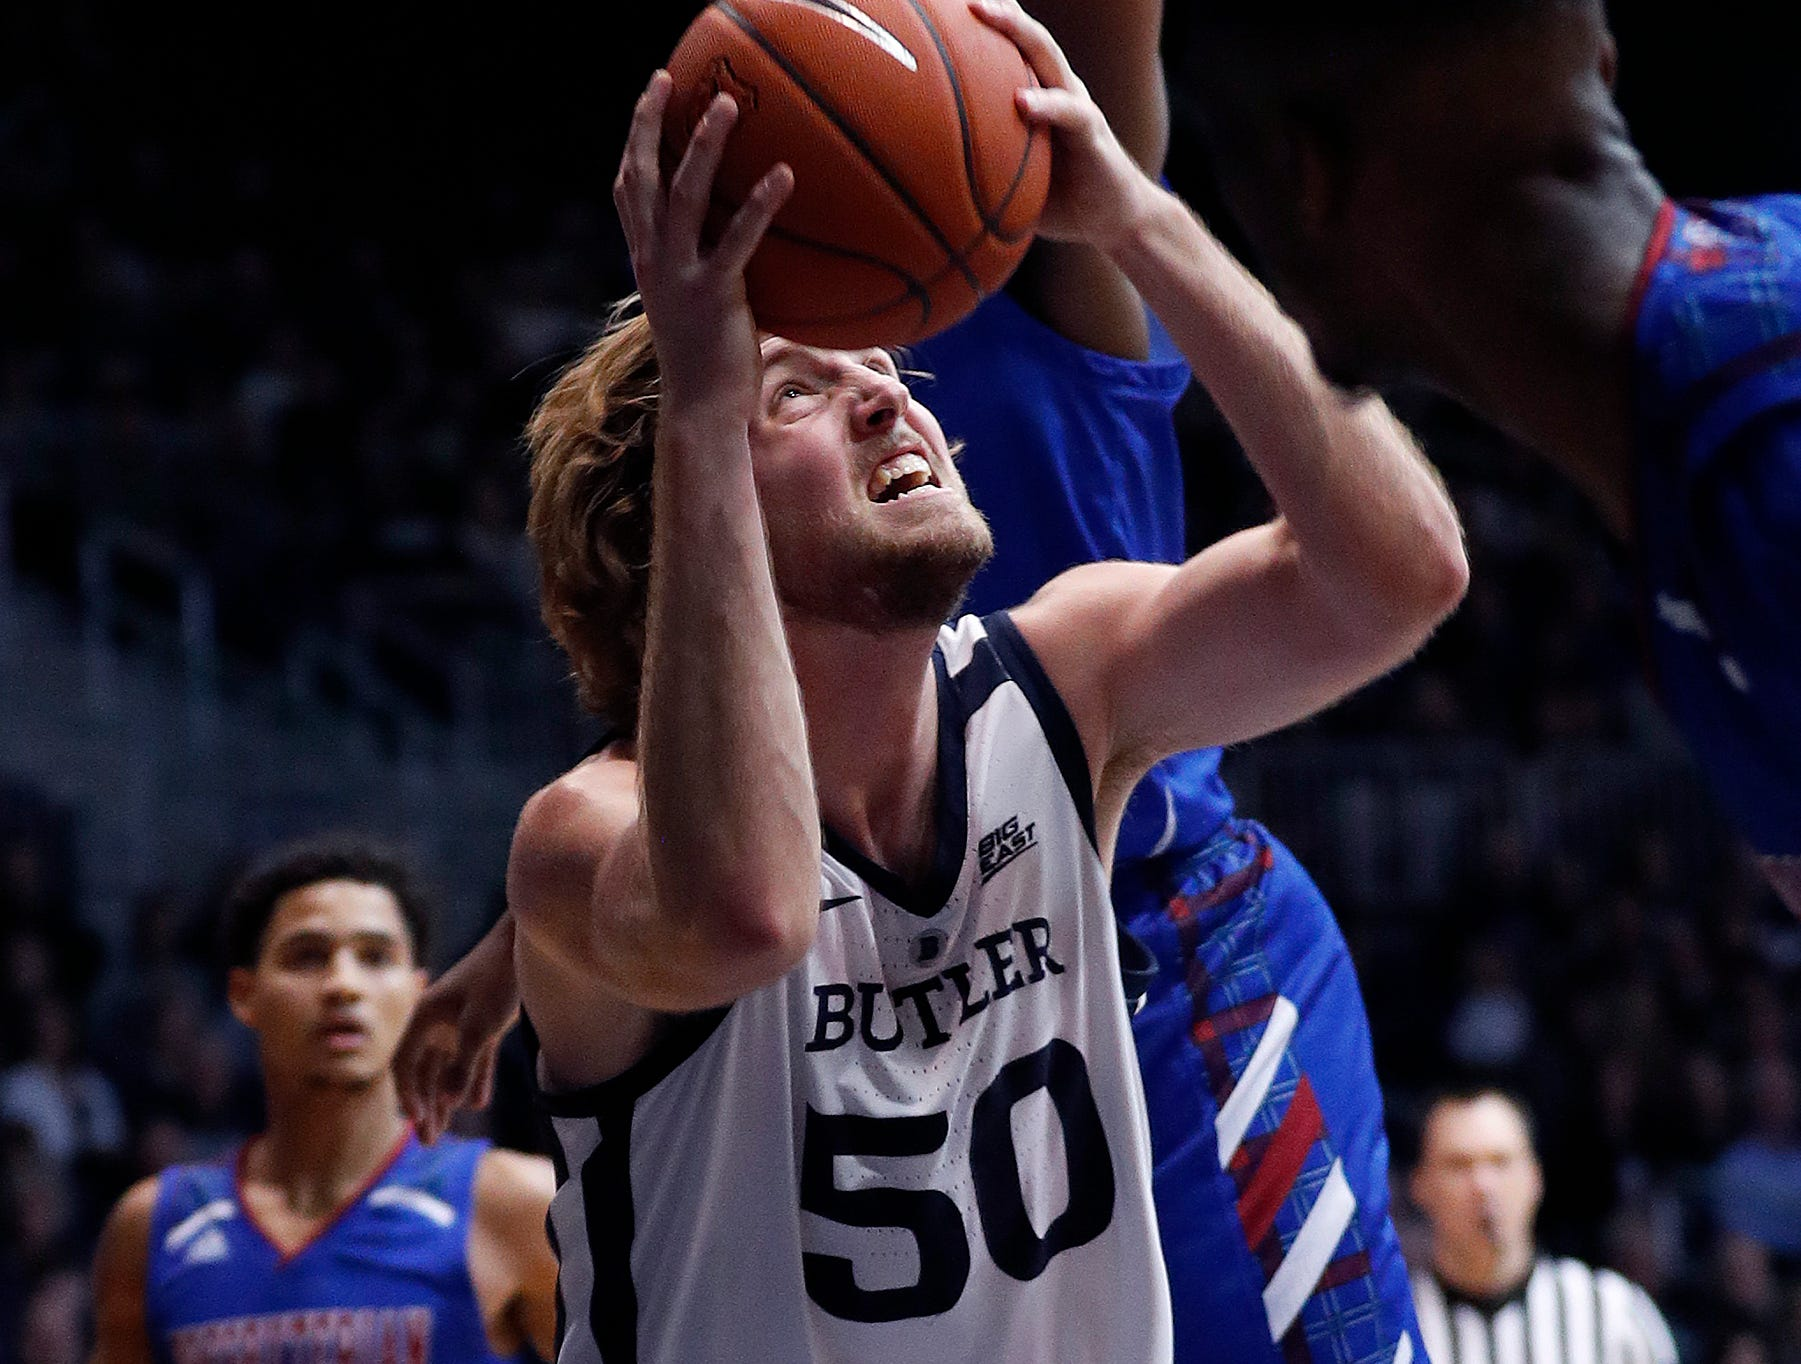 Butler Bulldogs forward Joey Brunk (50) makes a move to the basket on the Presbyterian Blue Hose defenders in the second half of their game at Hinkle Fieldhouse on Monday, Dec. 18, 2018.